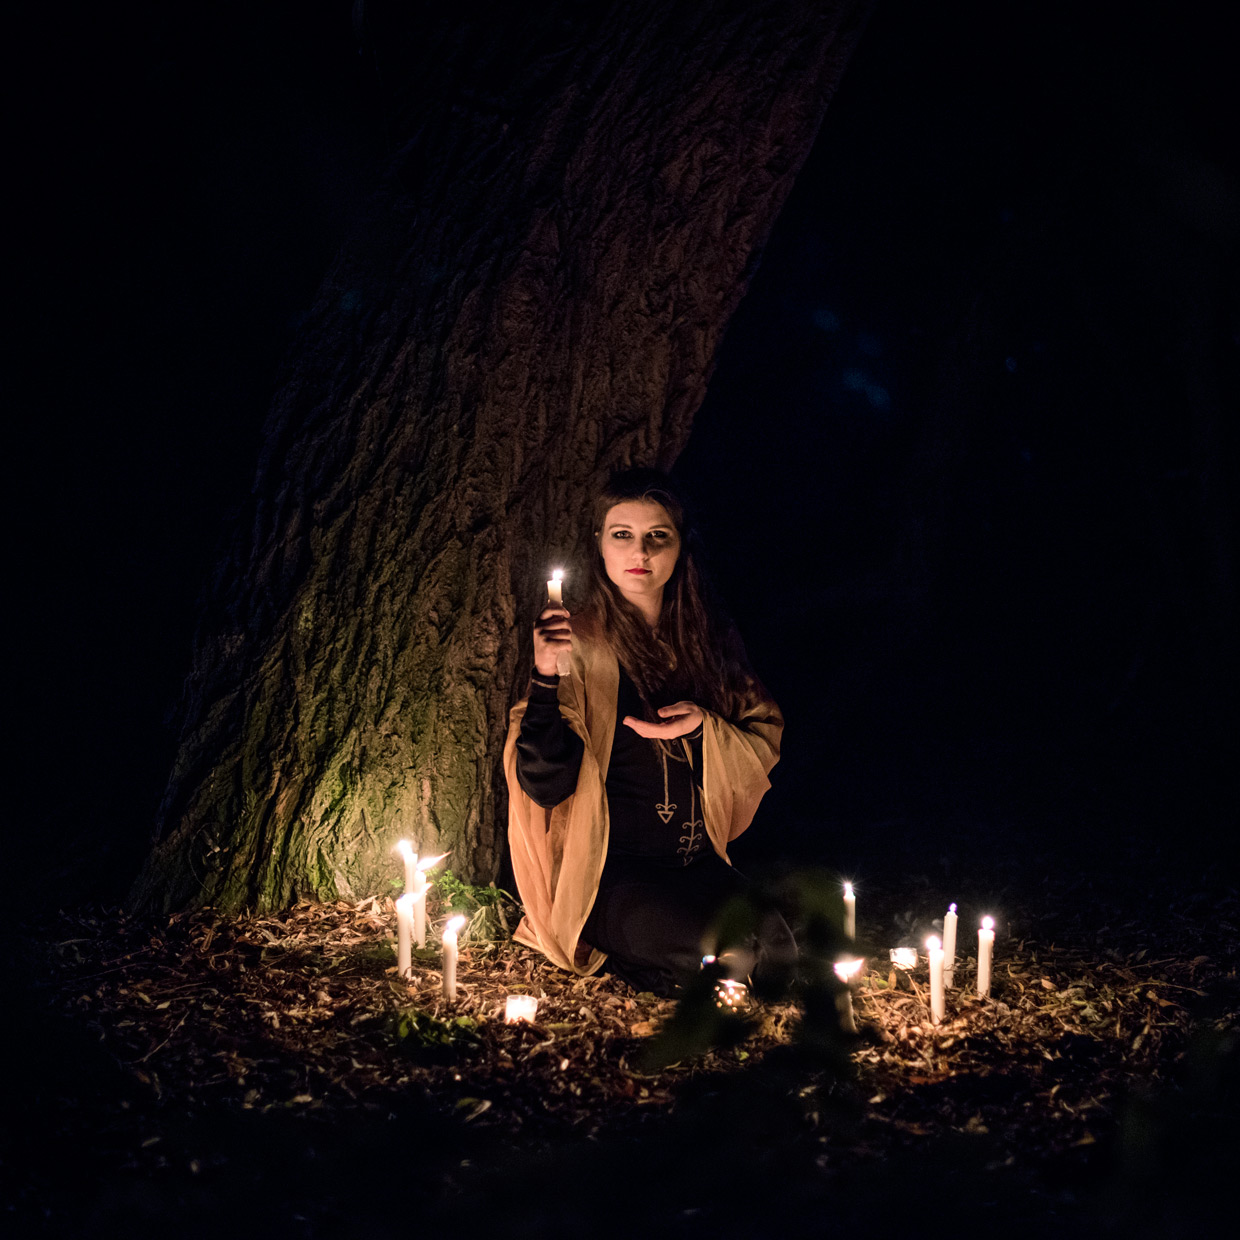 hjorthmedh-demelza-tree-candles